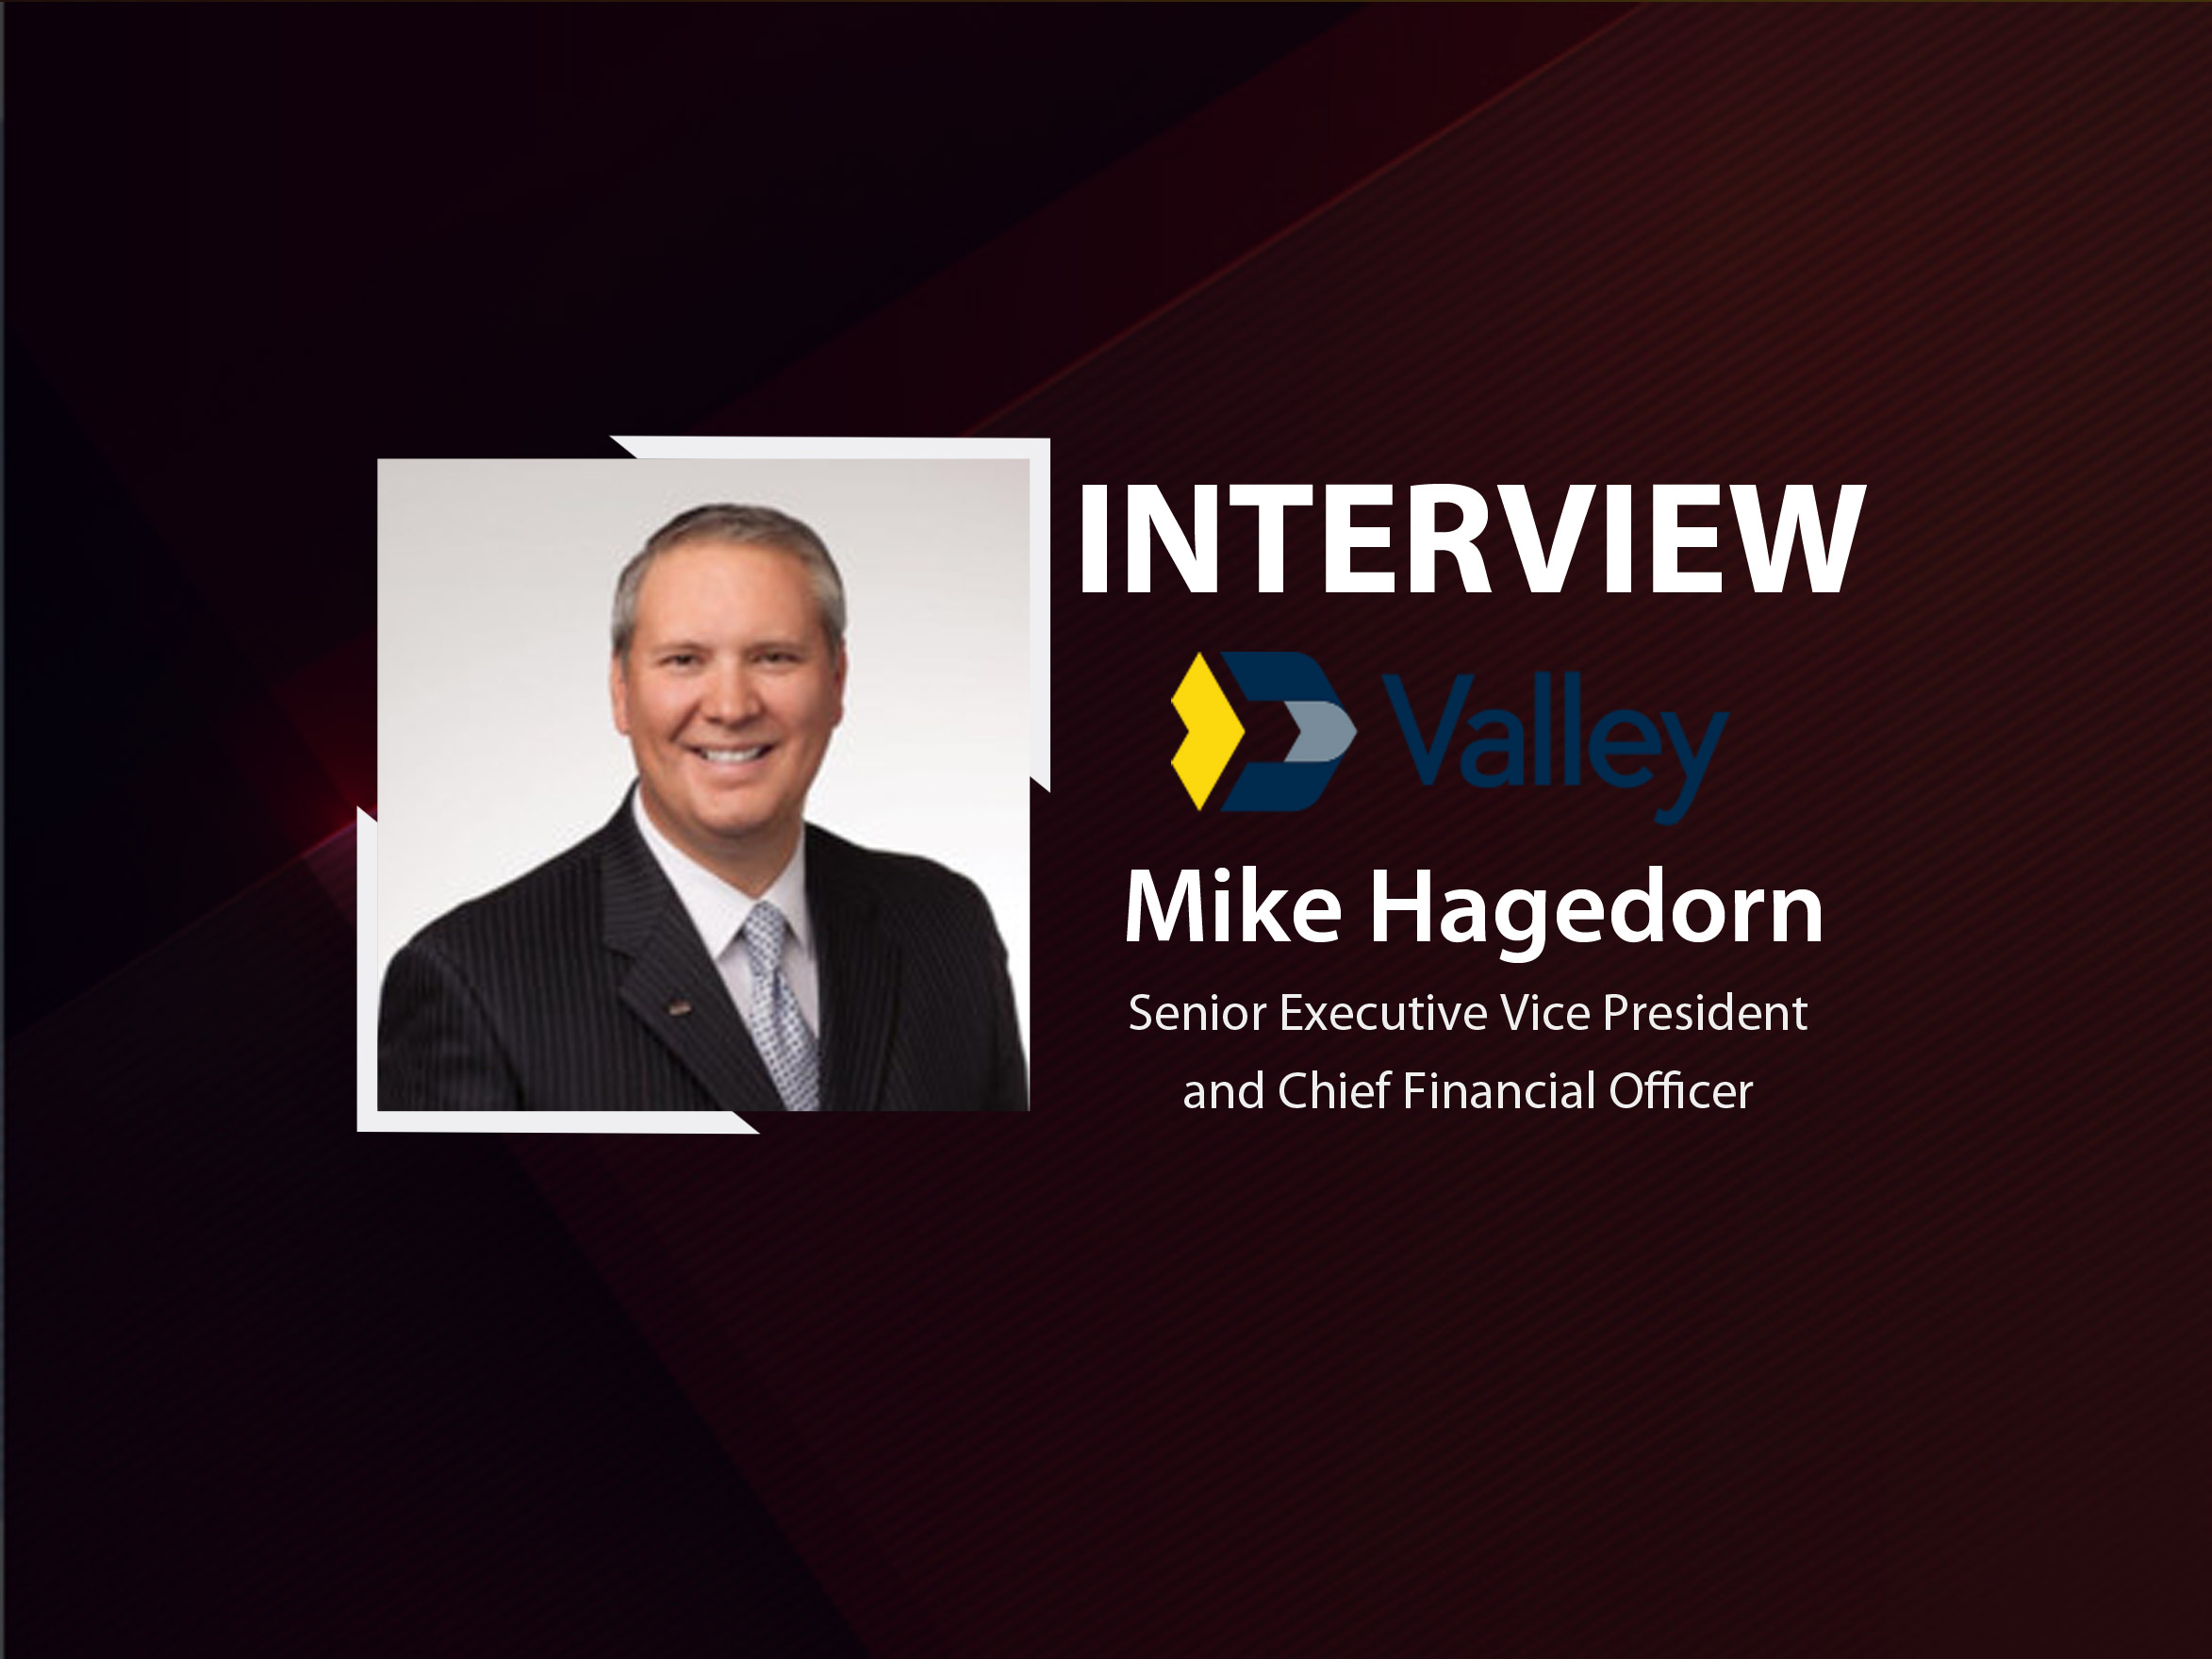 GlobalFintechSeries Interview with Michael Hagedorn, Senior Executive Vice President and Chief Financial Officer at Valley National Bank